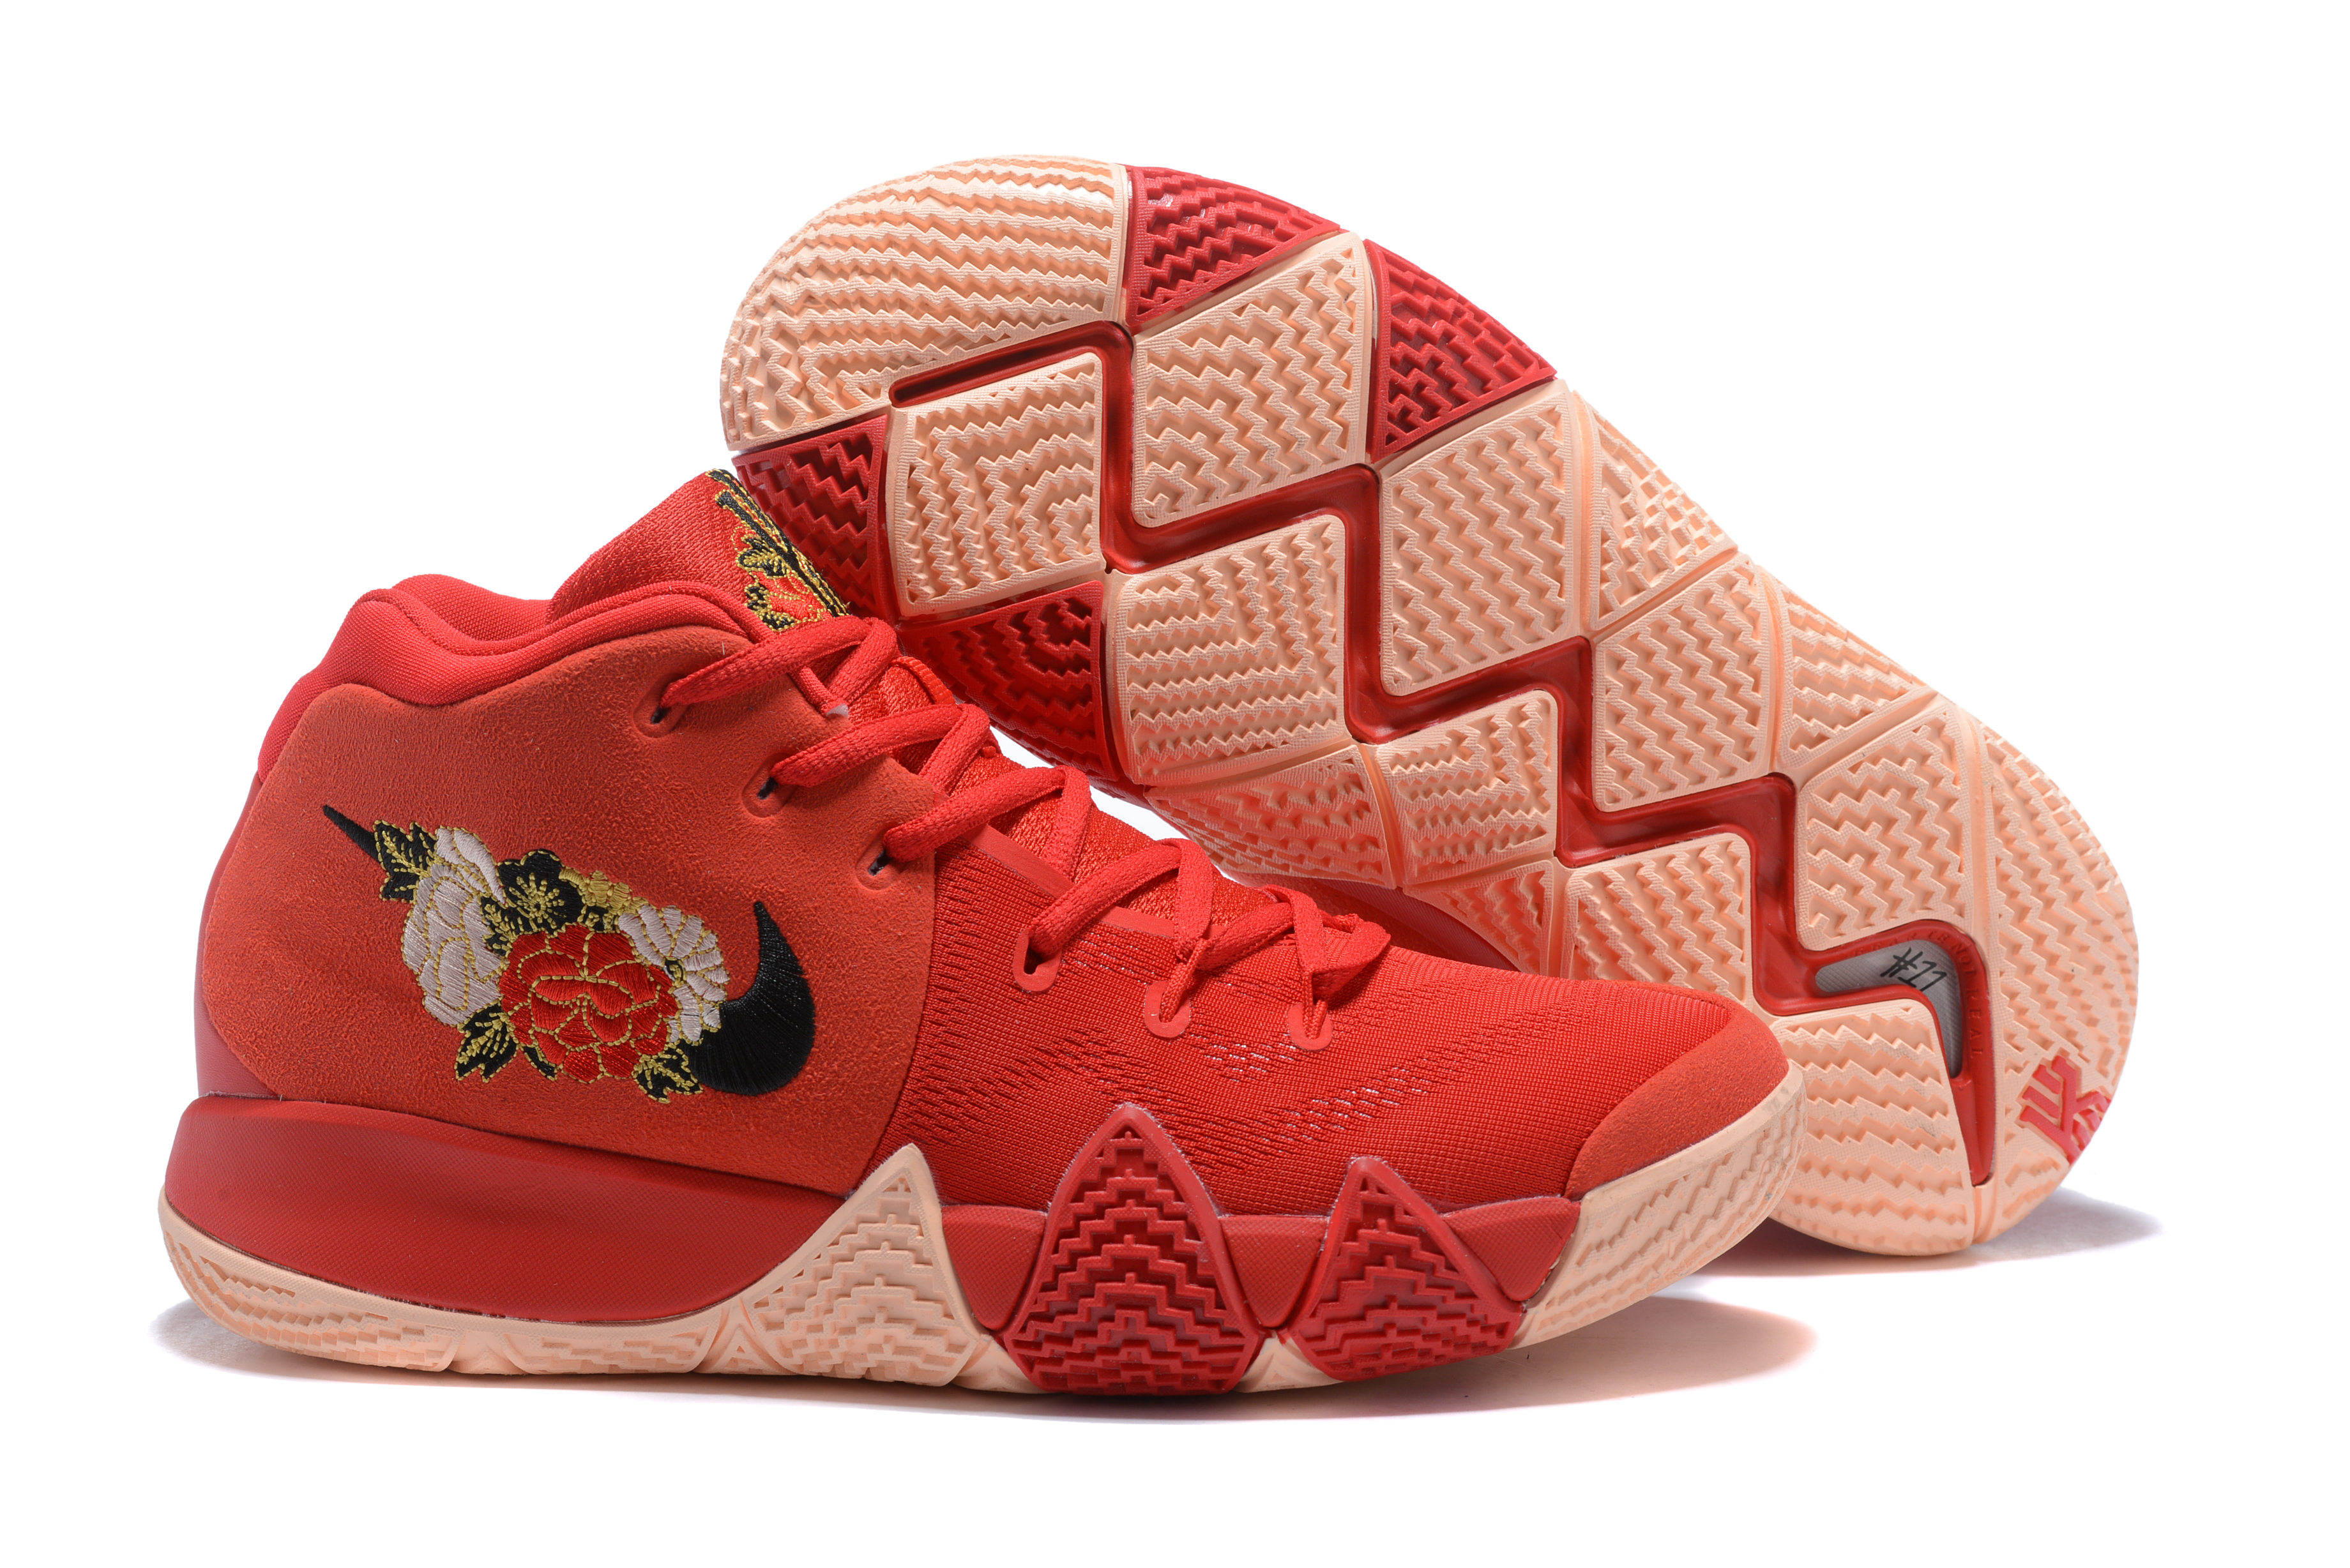 Nike Kyrie Irving 4 Chinese Red FLowers Shoes